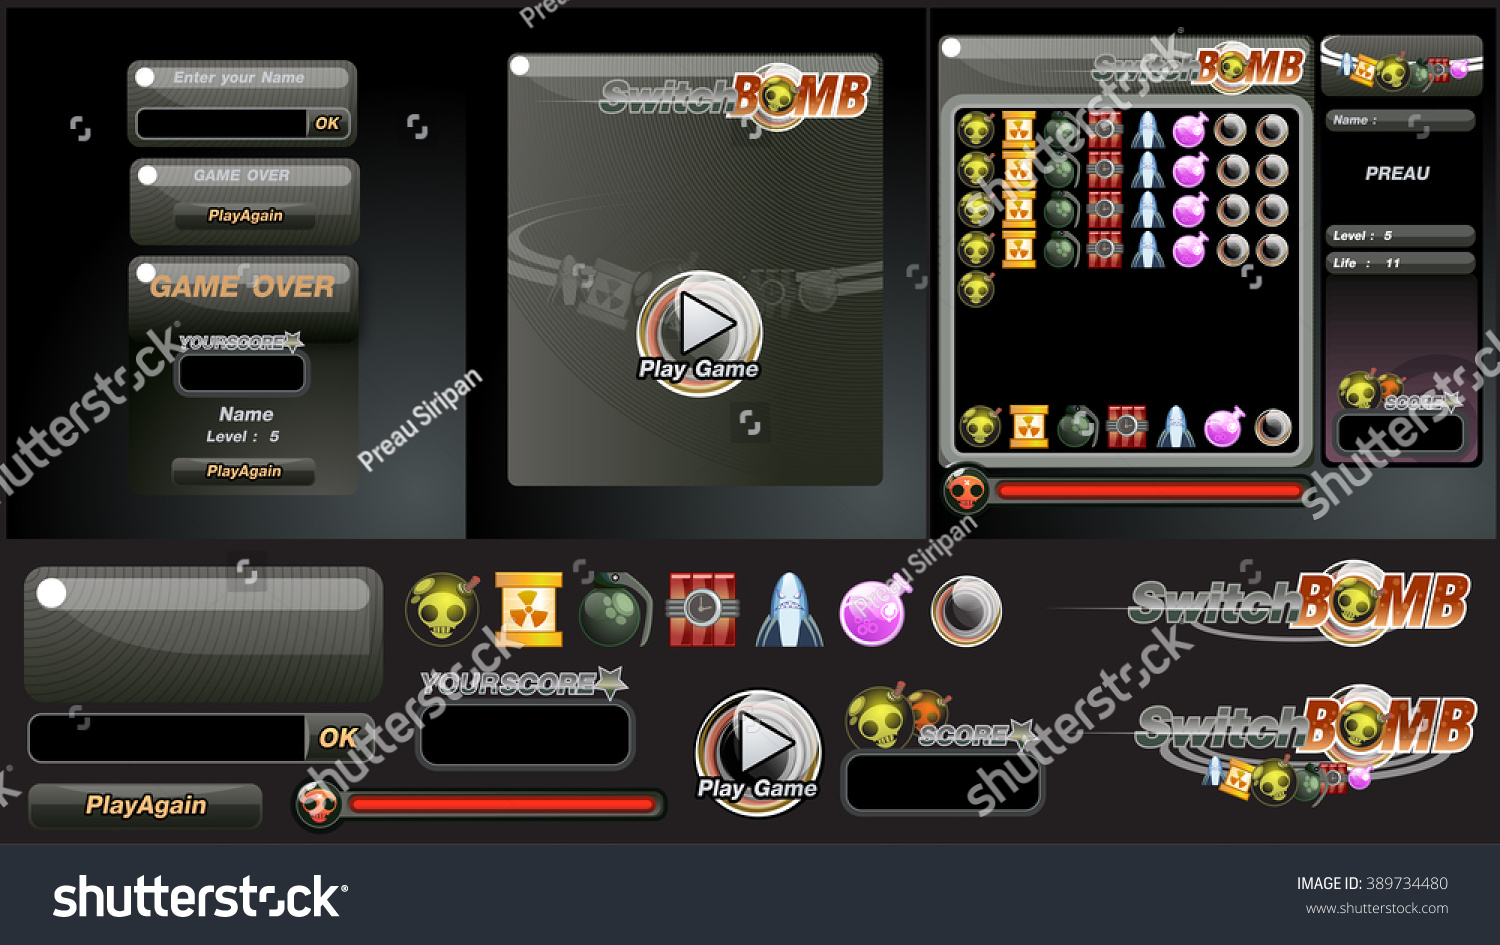 User Interface Switch Bomb Game Vector Stock Royalty Free For